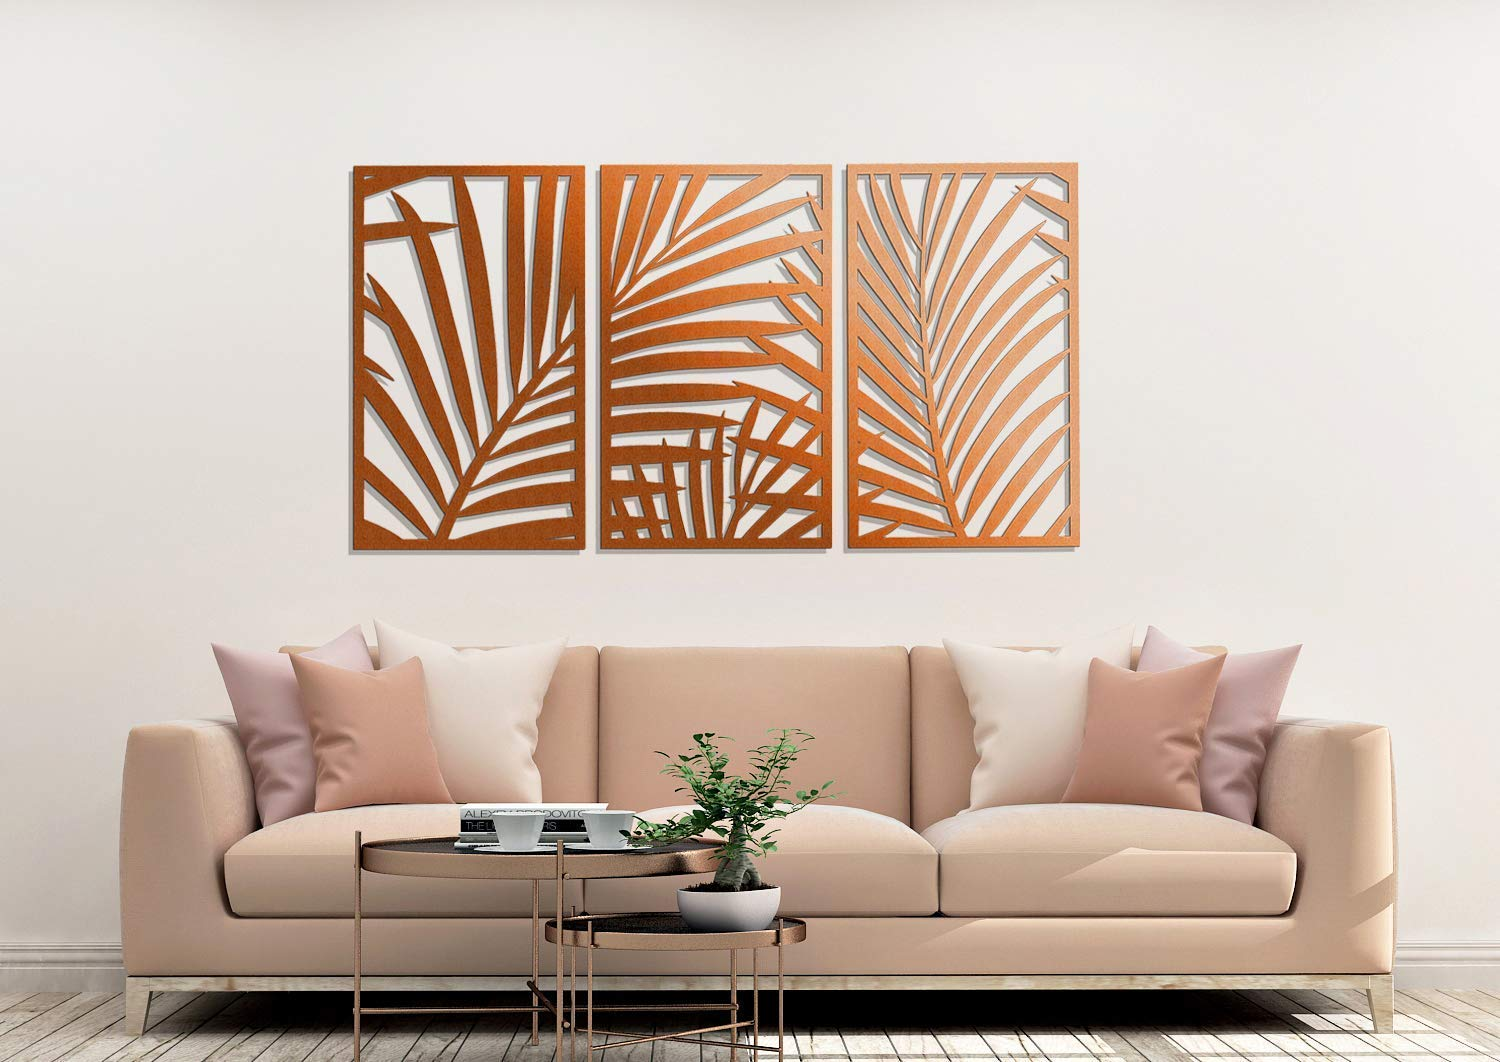 3d Stylish Wooden Wall Art Decor Palm Leaves Triptych 66 X 120 Cm Openwork Wall Decor Decorative Screen Pendant Wooden Painting Amazon Co Uk Handmade